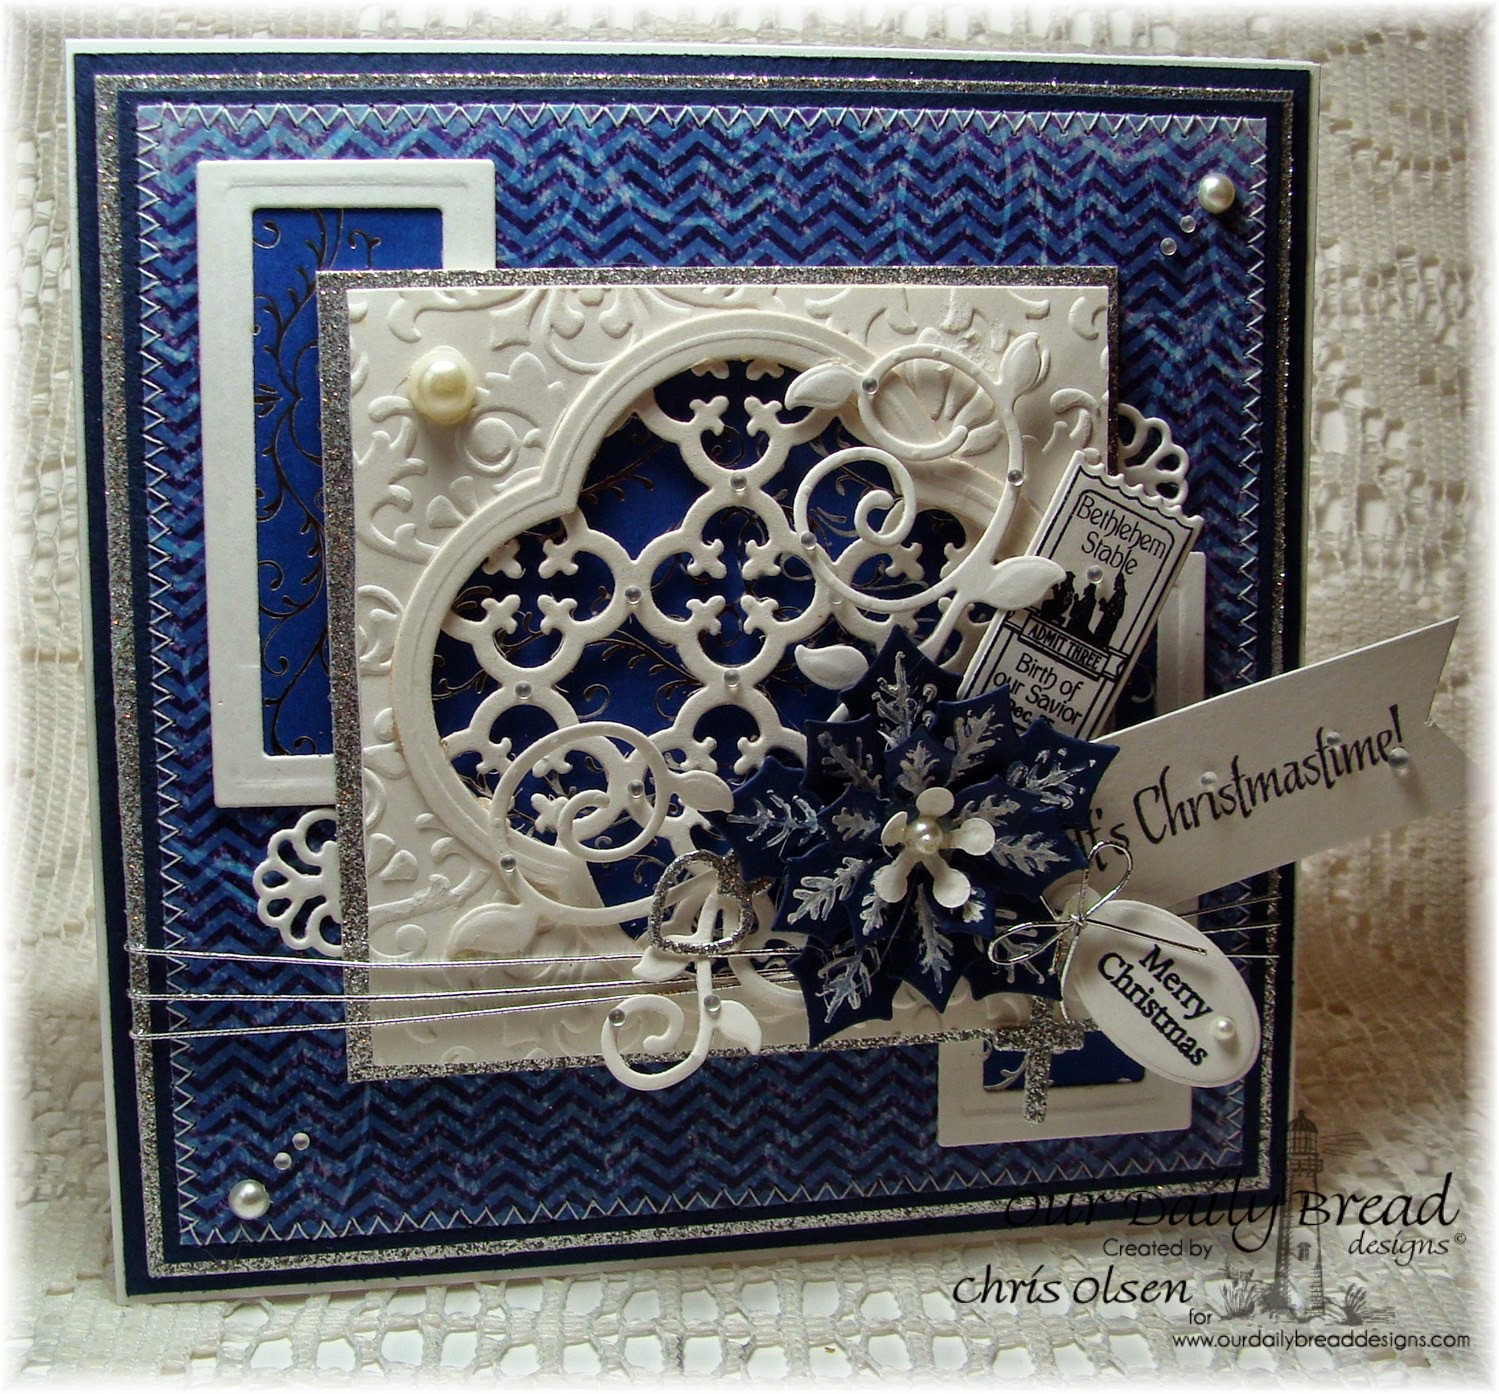 Our Daily Bread Designs, Admit Three, Mini tag sentiments, God's Timing, Peaceful Poinsettia die, Quatrefoil Pattern die, Quatrefoil Design die, Fancy Foliage die, Mini Tag dies, designer-Chris Olsen